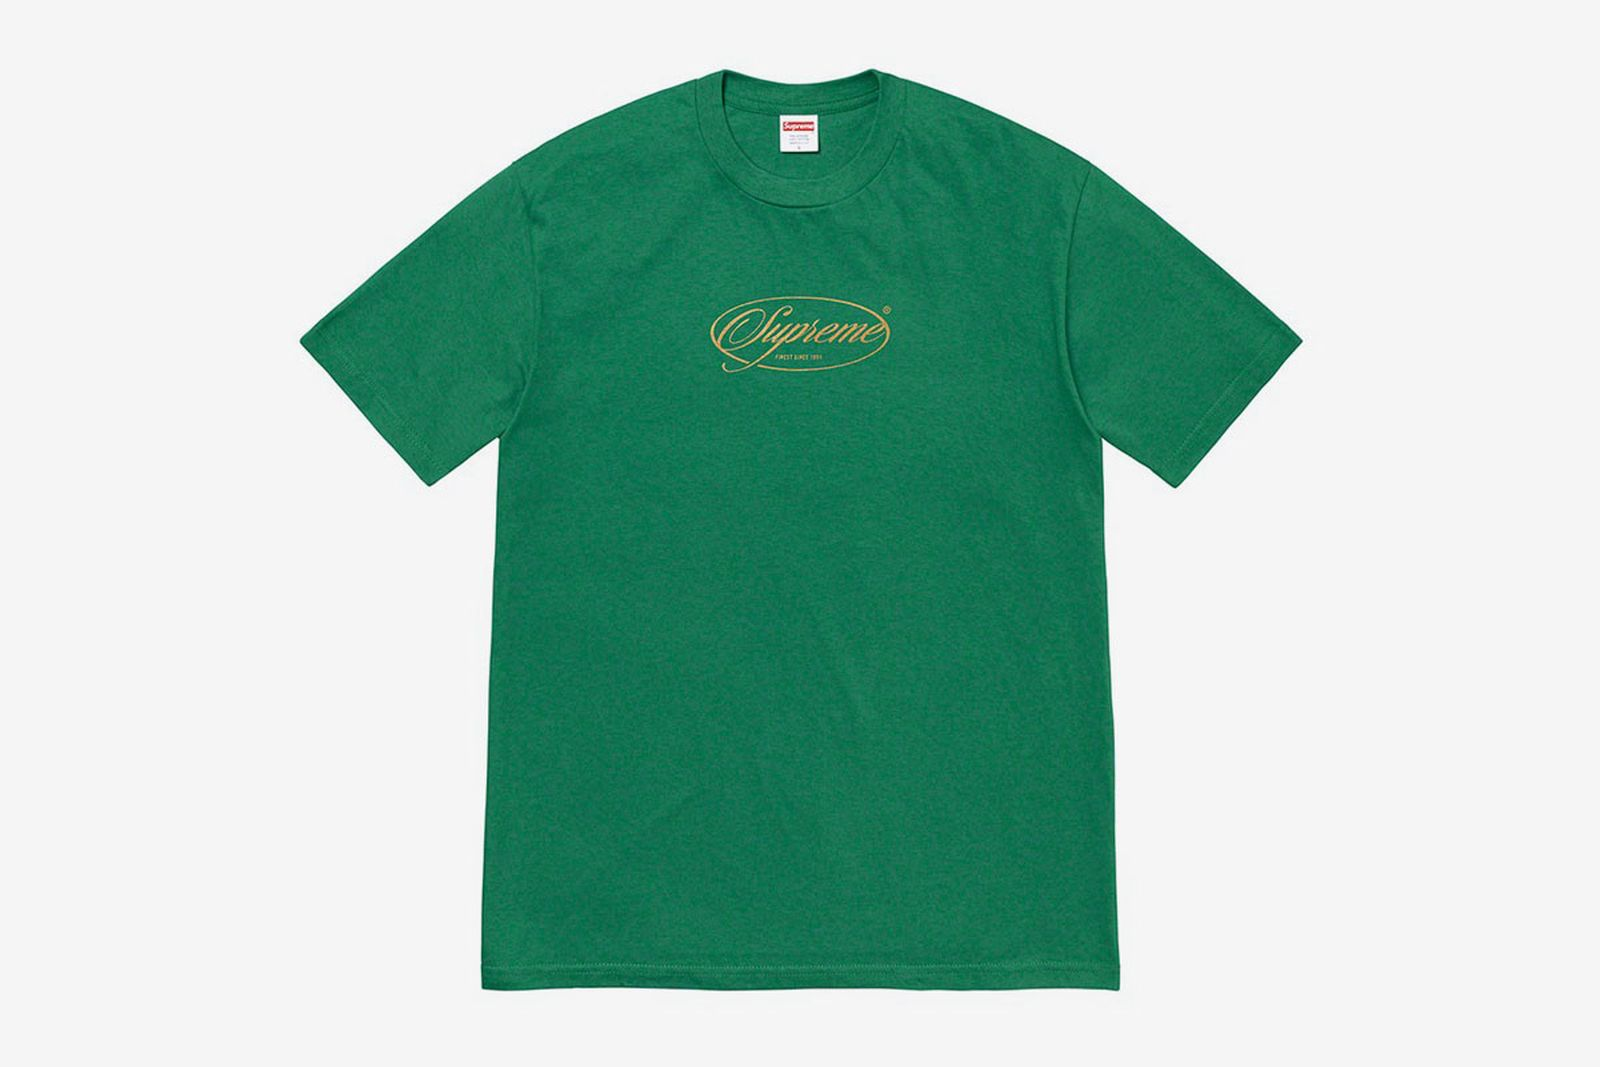 supreme-t-shirts-winter-2020-010